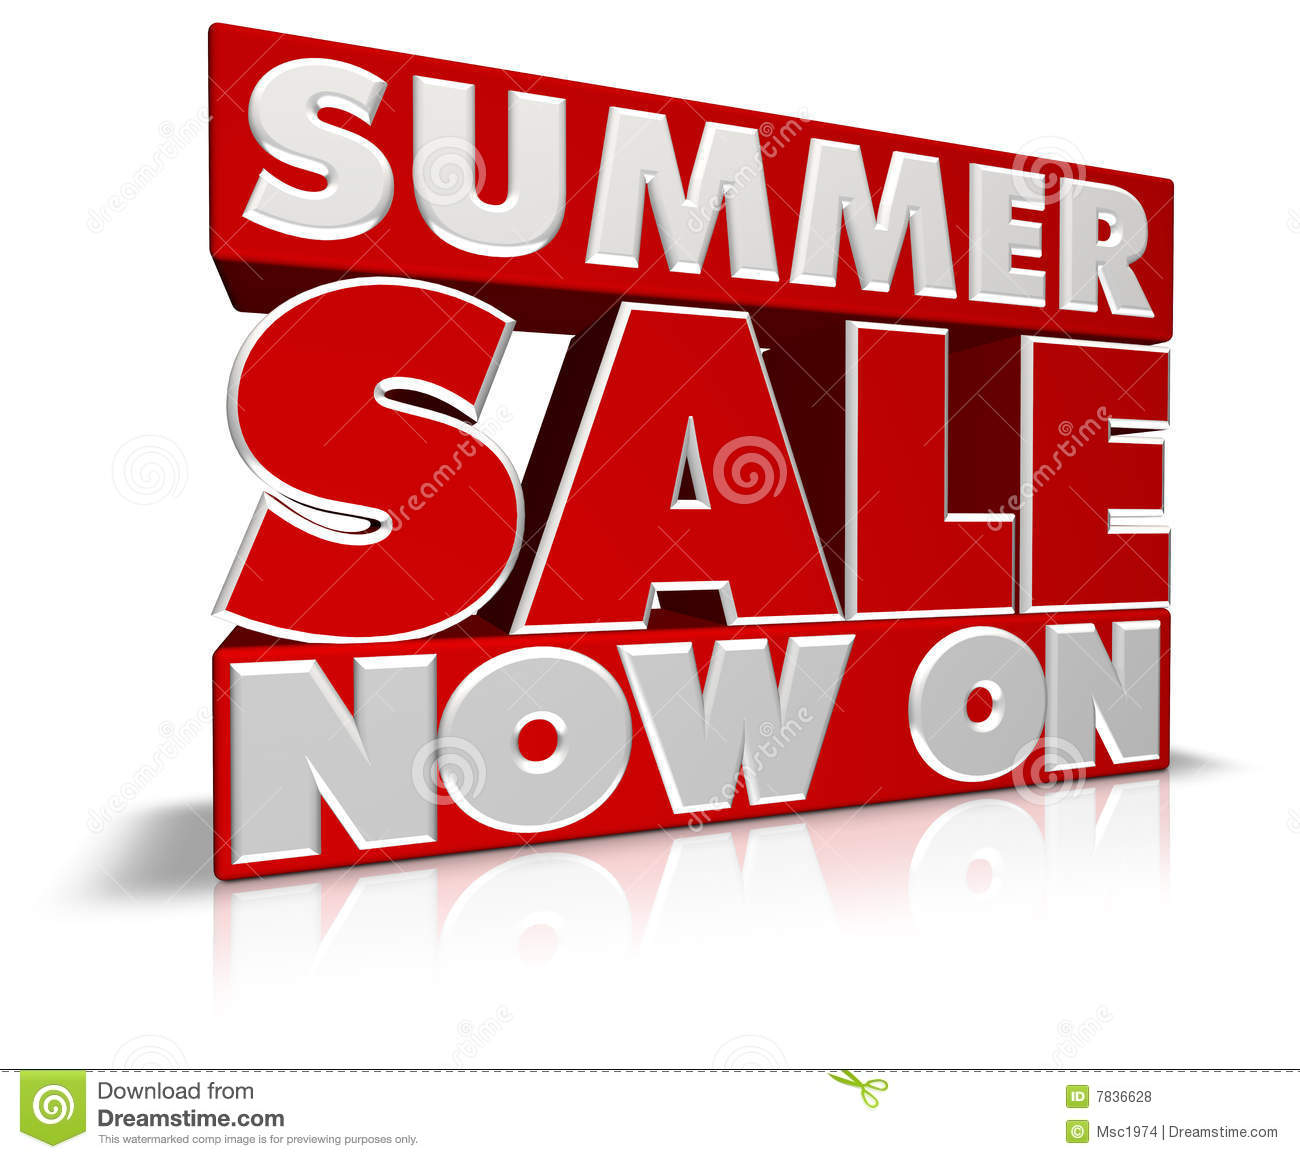 Summer Sale Now On Royalty Free Stock Photos - Image: 7836628